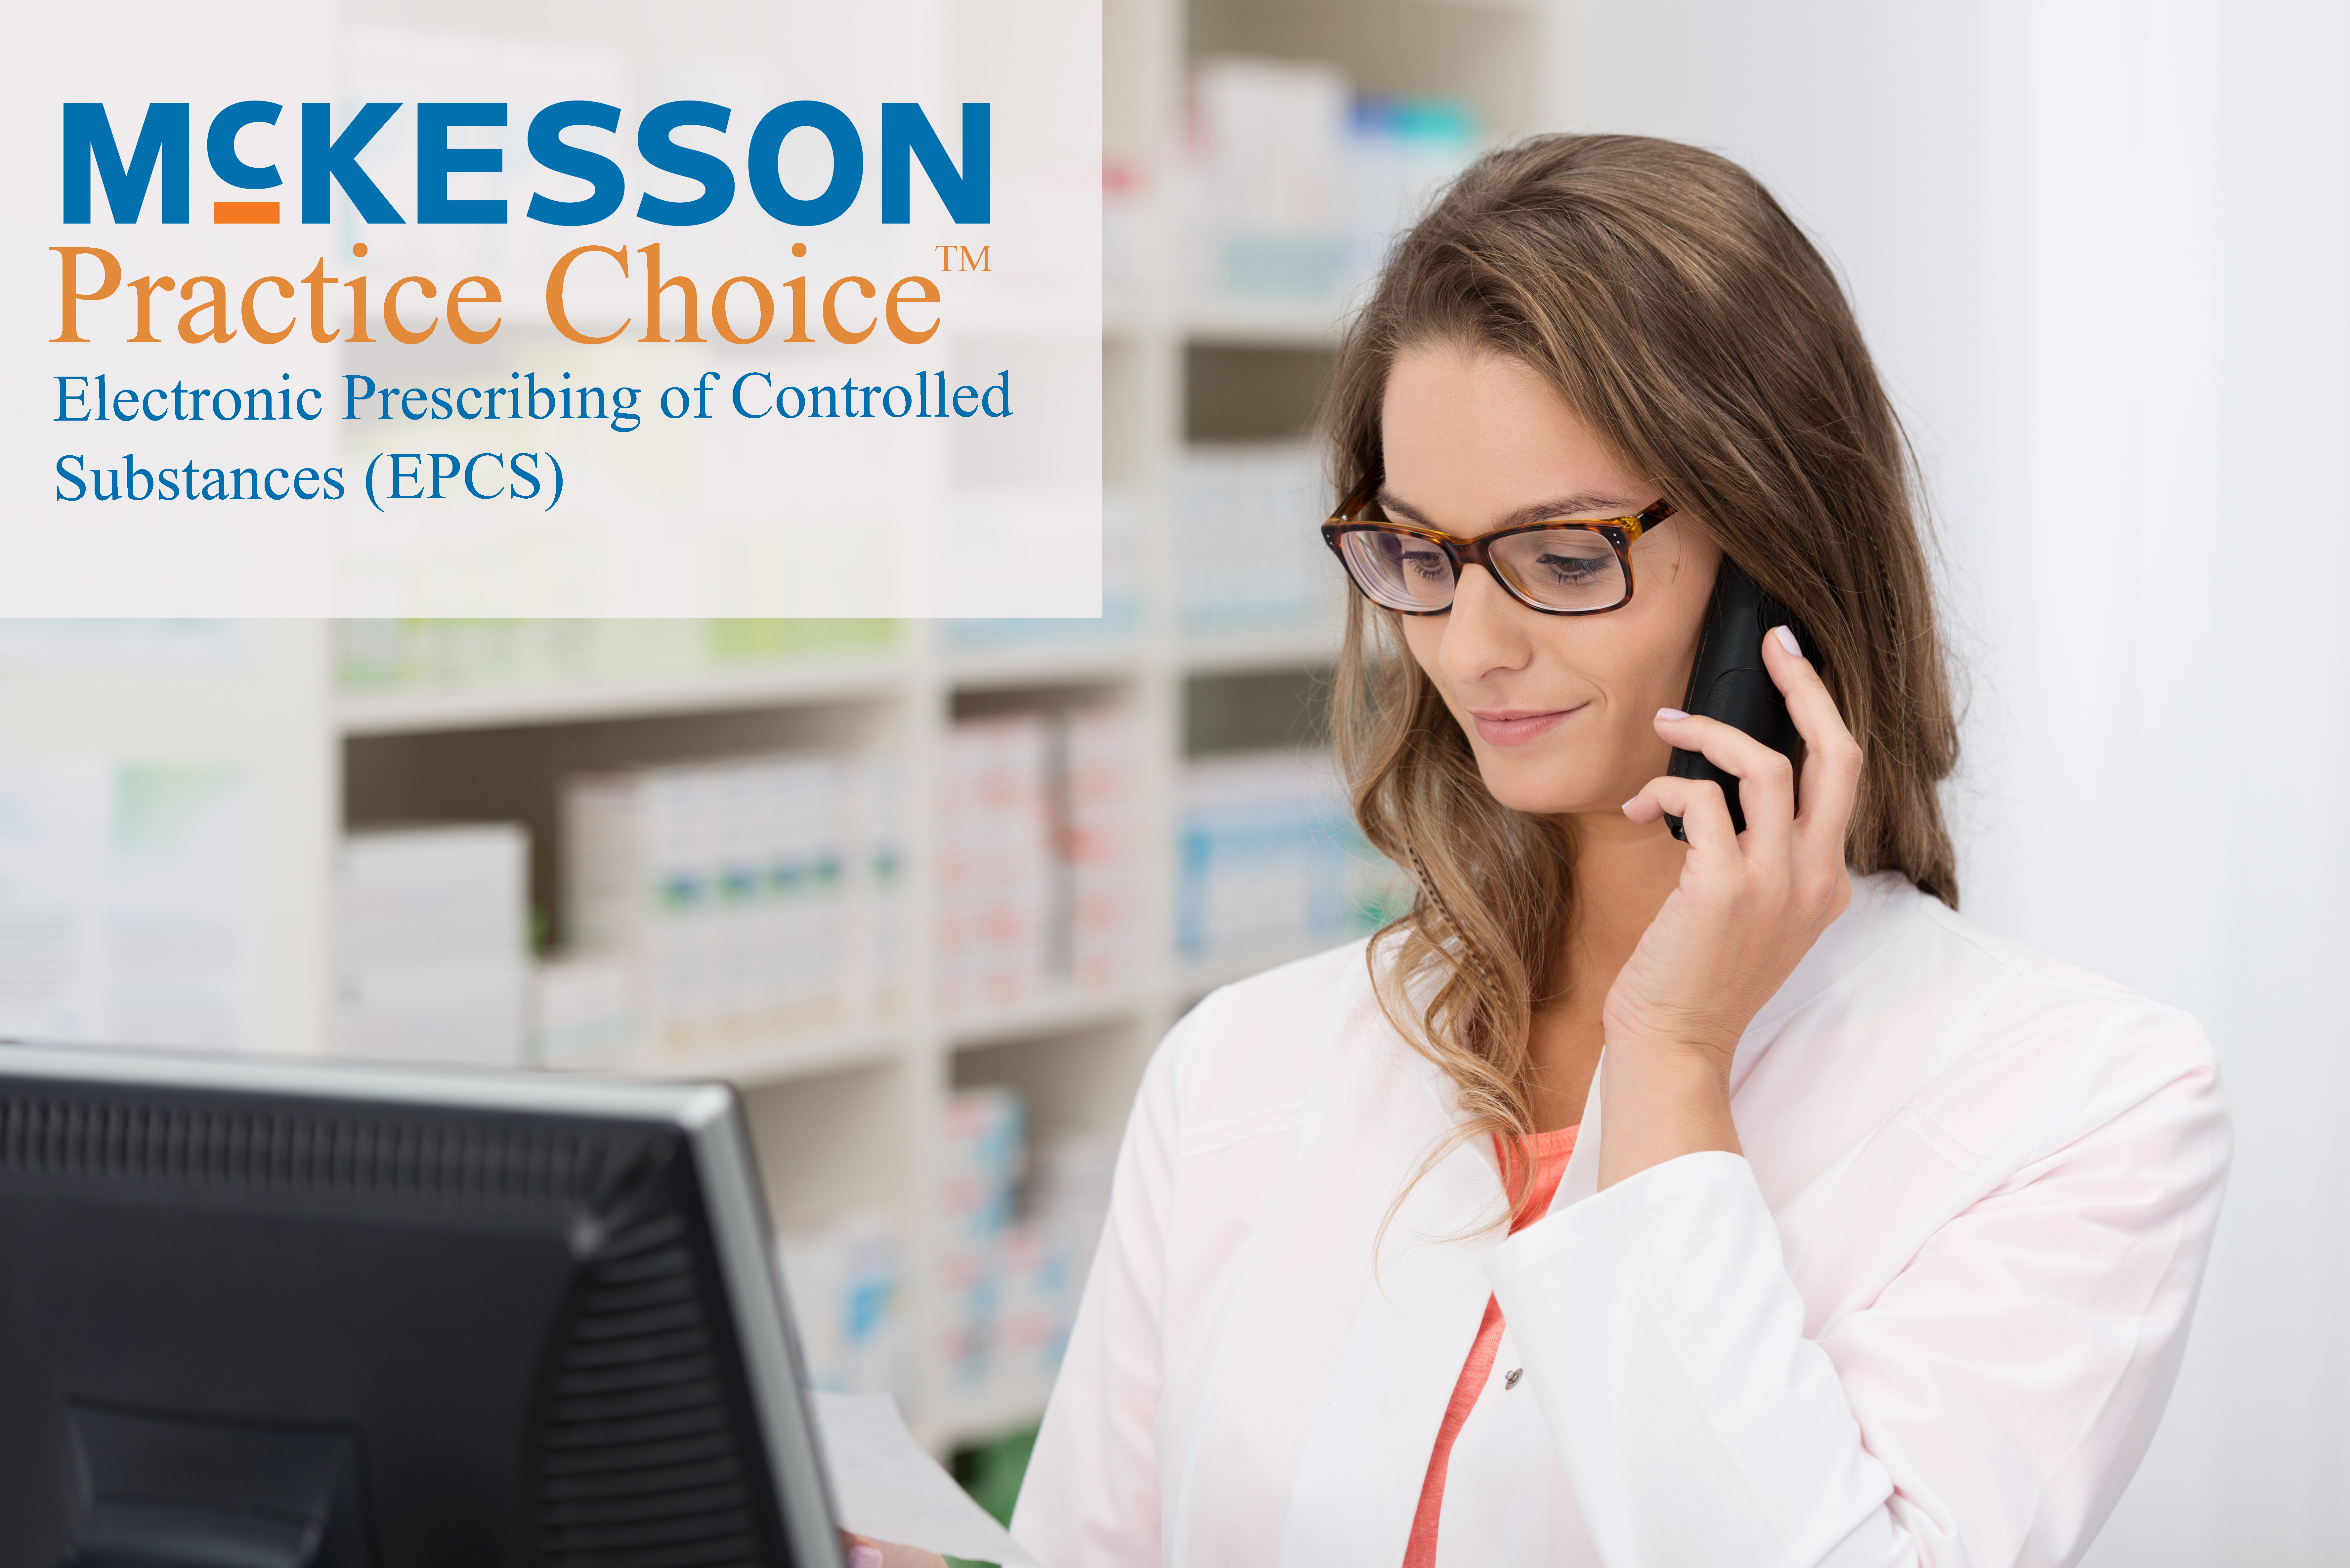 Prescribing Controlled Substances in McKesson Practice Choice